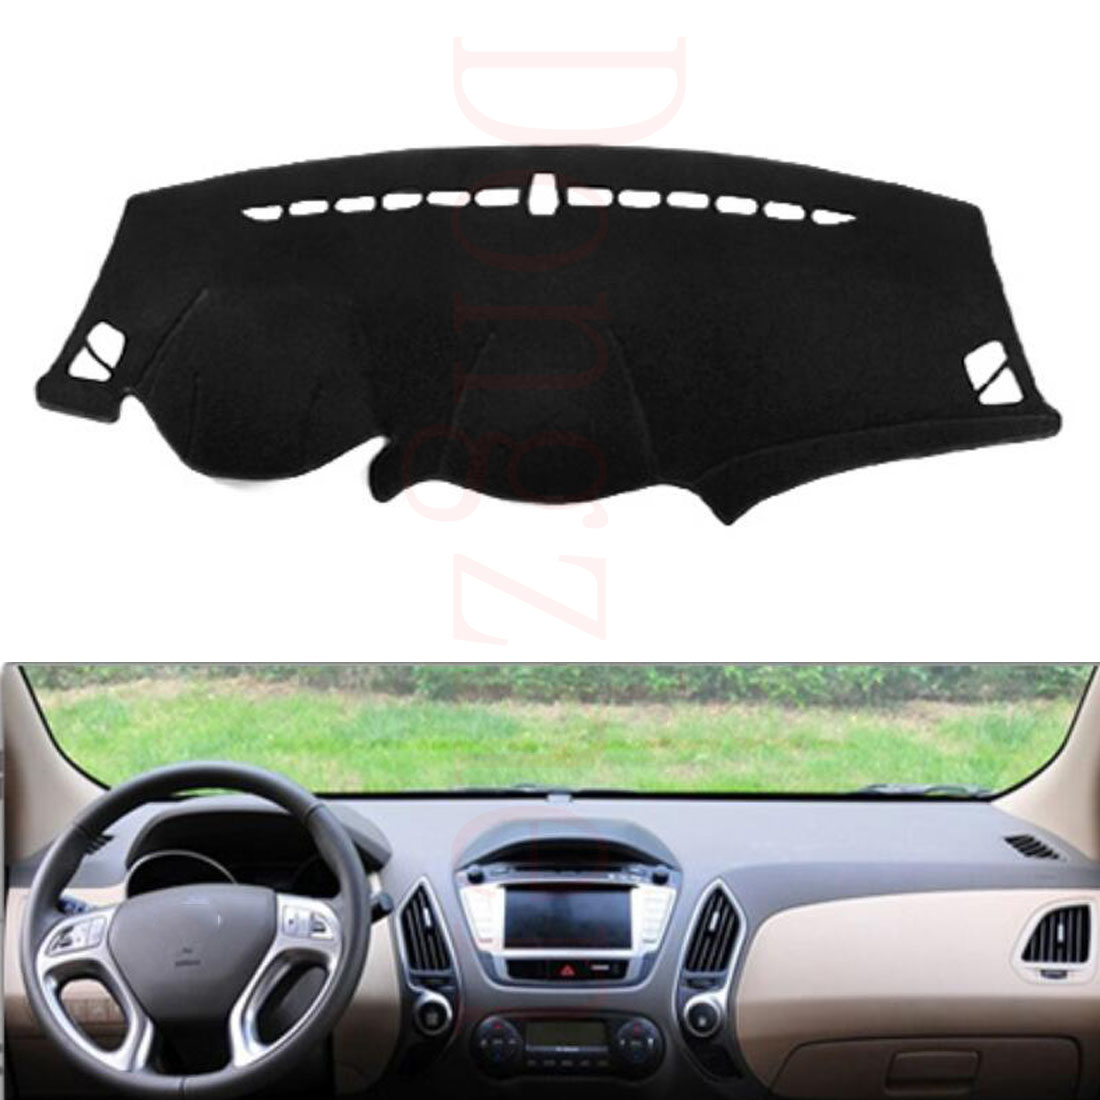 Dongzhen Fit For HYUNDAI iX35 2010 to 2016 Car Dashboard Cover Avoid Light Pad Instrument Platform Dash Board Cover